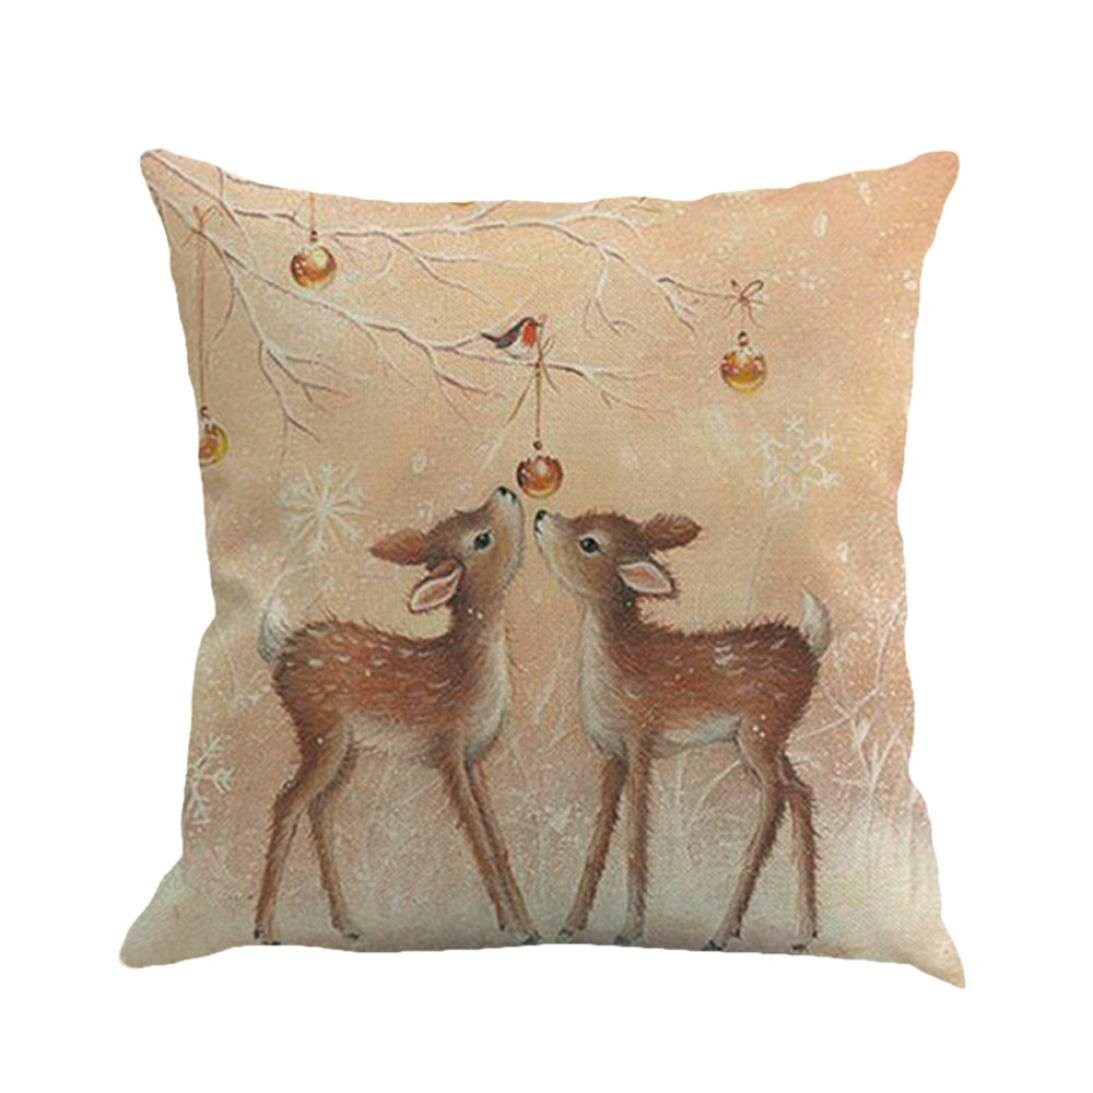 Ninasill 45X45 cm Pillow Case, ღ ღ Christmas Printing Dyeing Sofa Bed Home Decor Pillow Cover Cushion Cover (A)